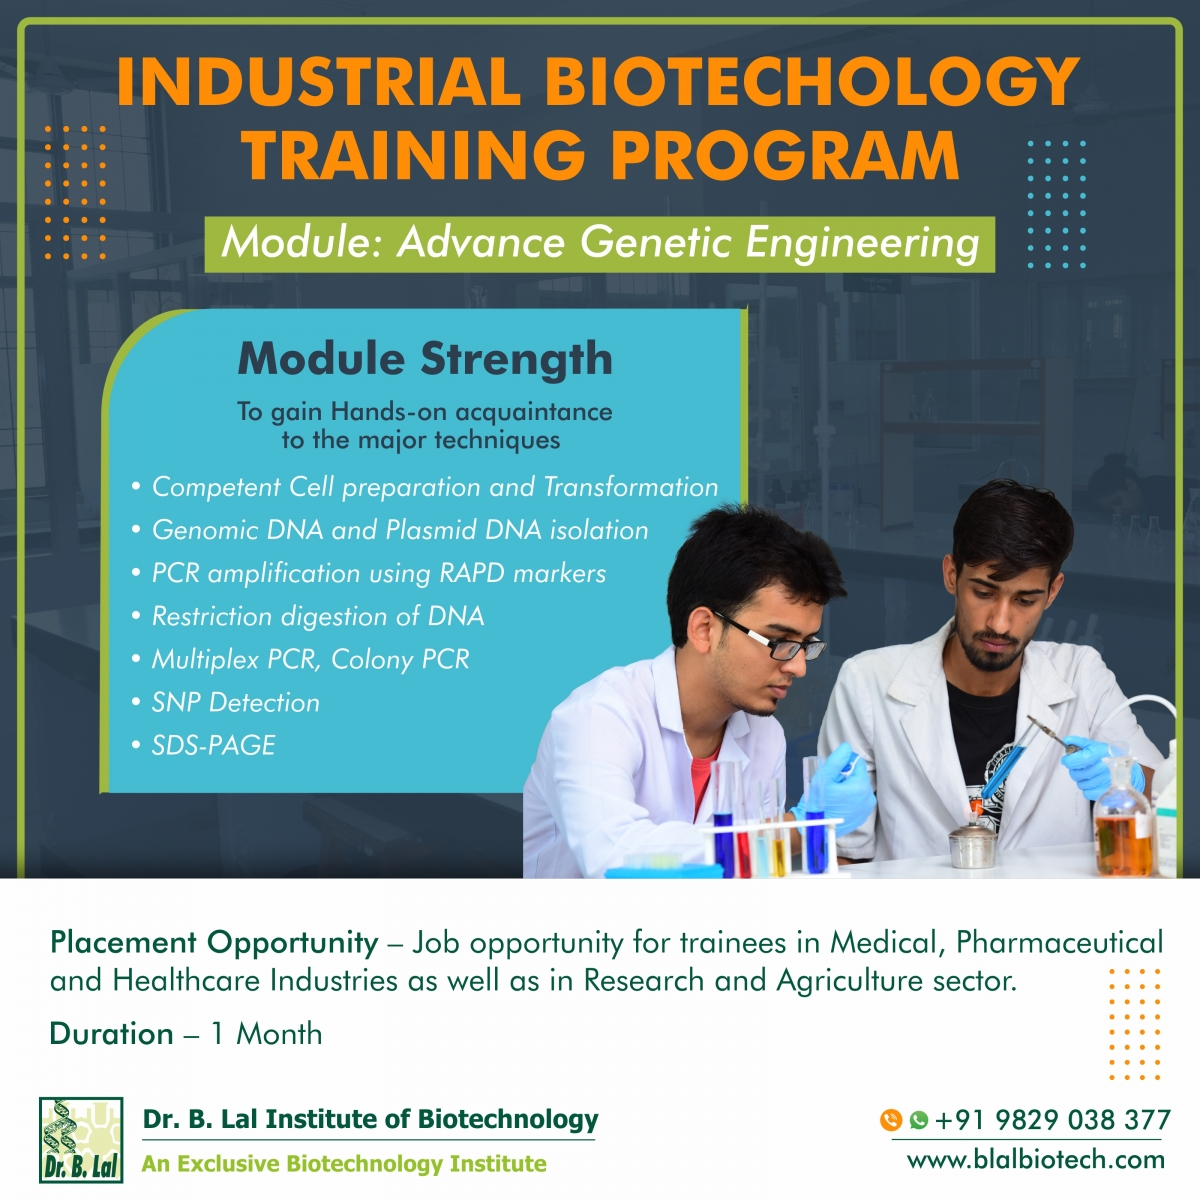 Industrial Biotechnology Training Program | Module: Advance Genetic Engineering